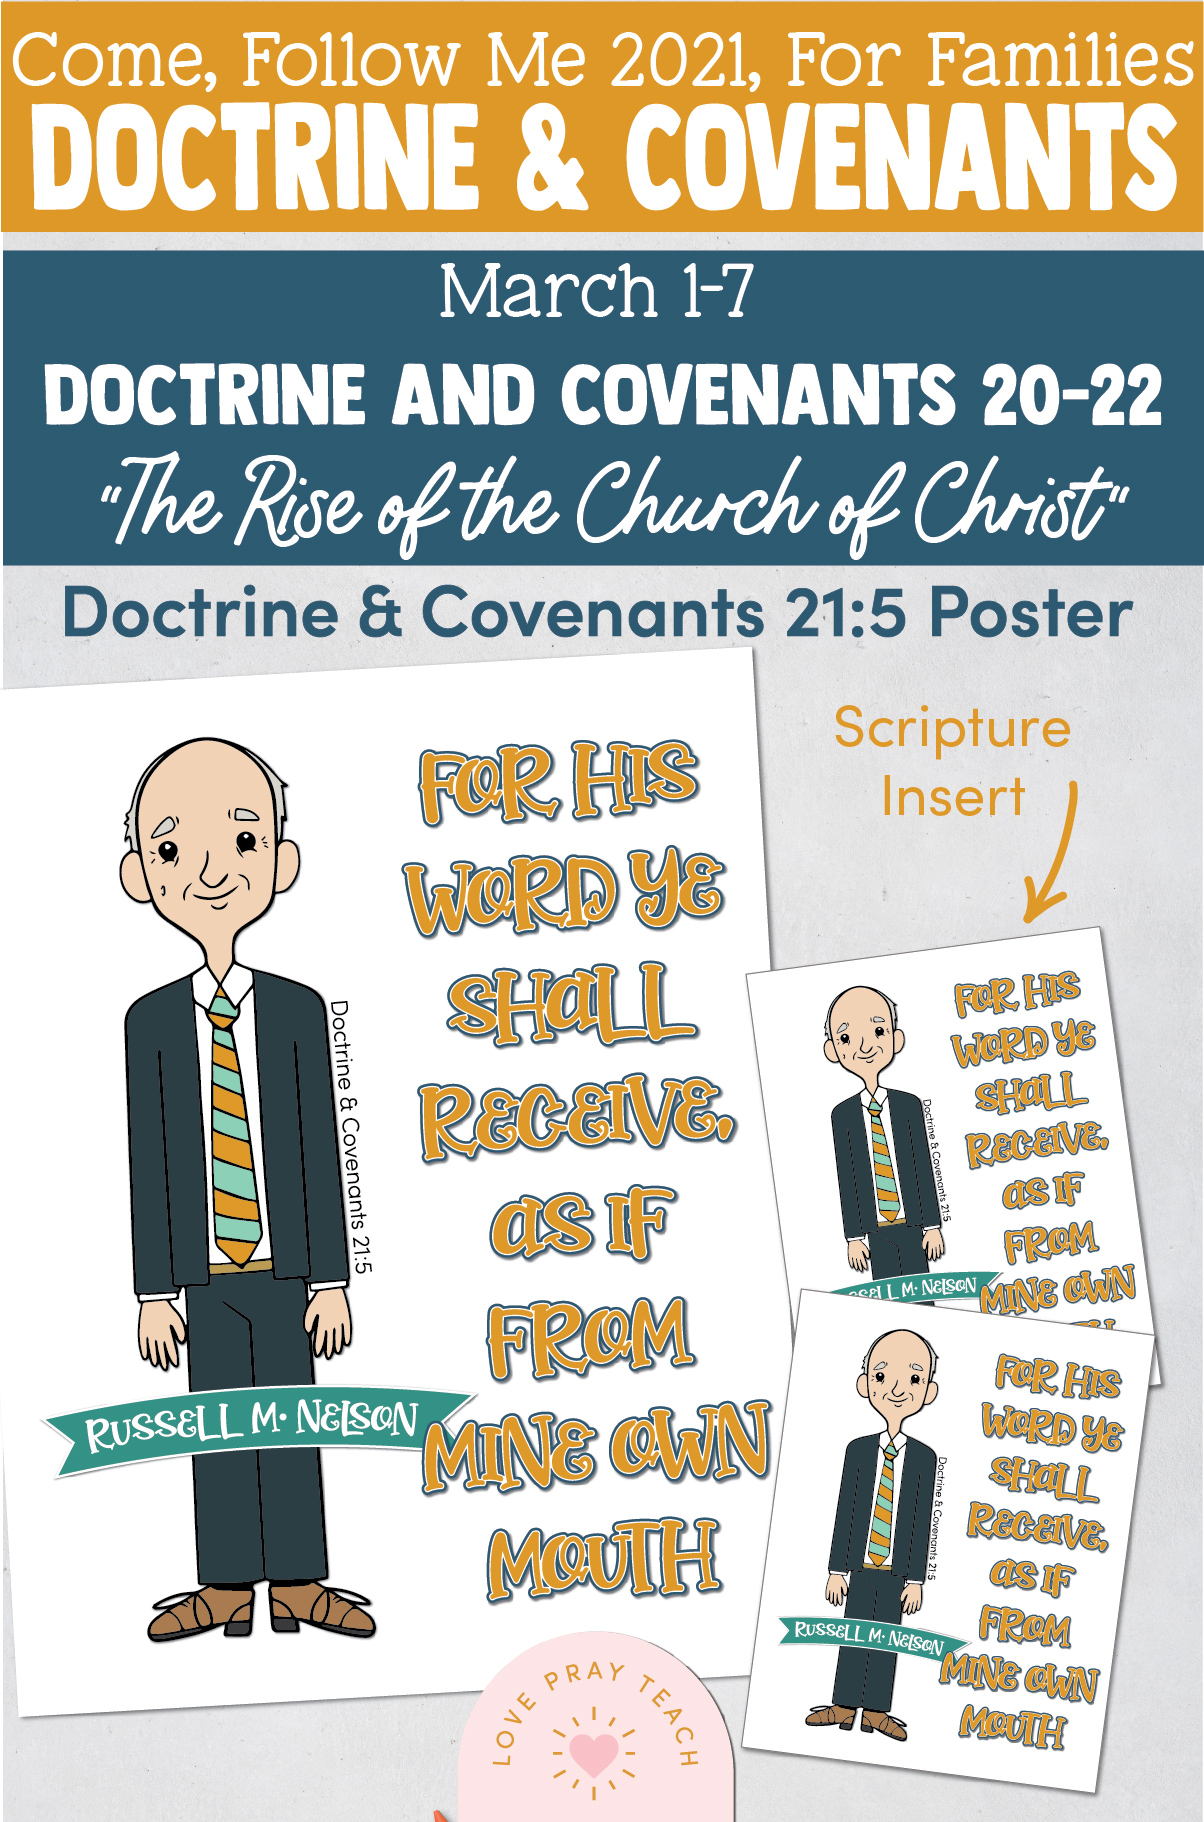 """Come, Follow Me—For Individuals and Families: Doctrine And Covenants 2021, March Week 1:March 1-7, Doctrine and Covenants 20–22, """"The Rise of the Church of Christ"""""""